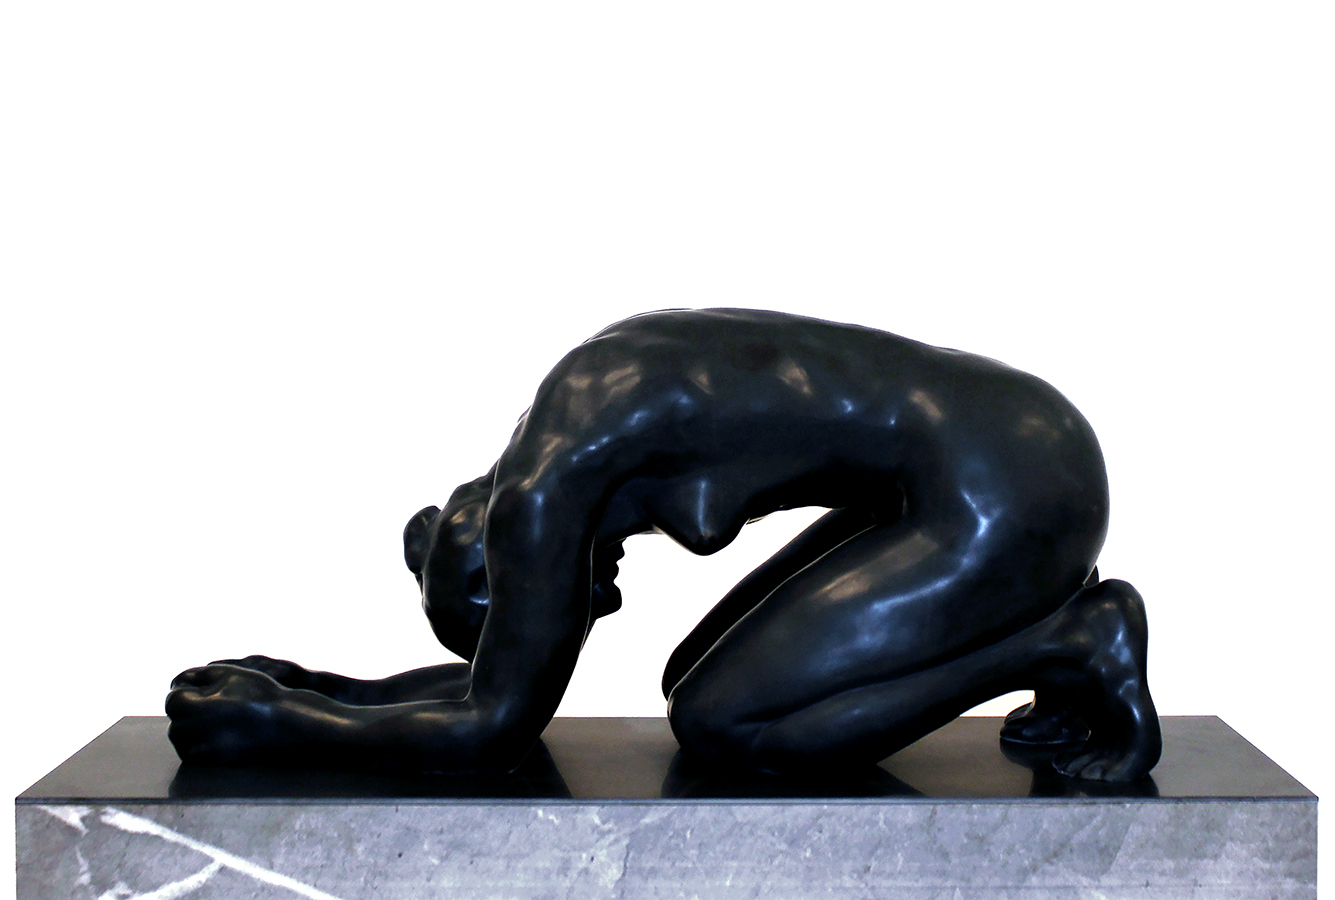 The Wait, 2019, Belgian black marble, 31 1/2 x 11 1/4 x 15 1/2 in